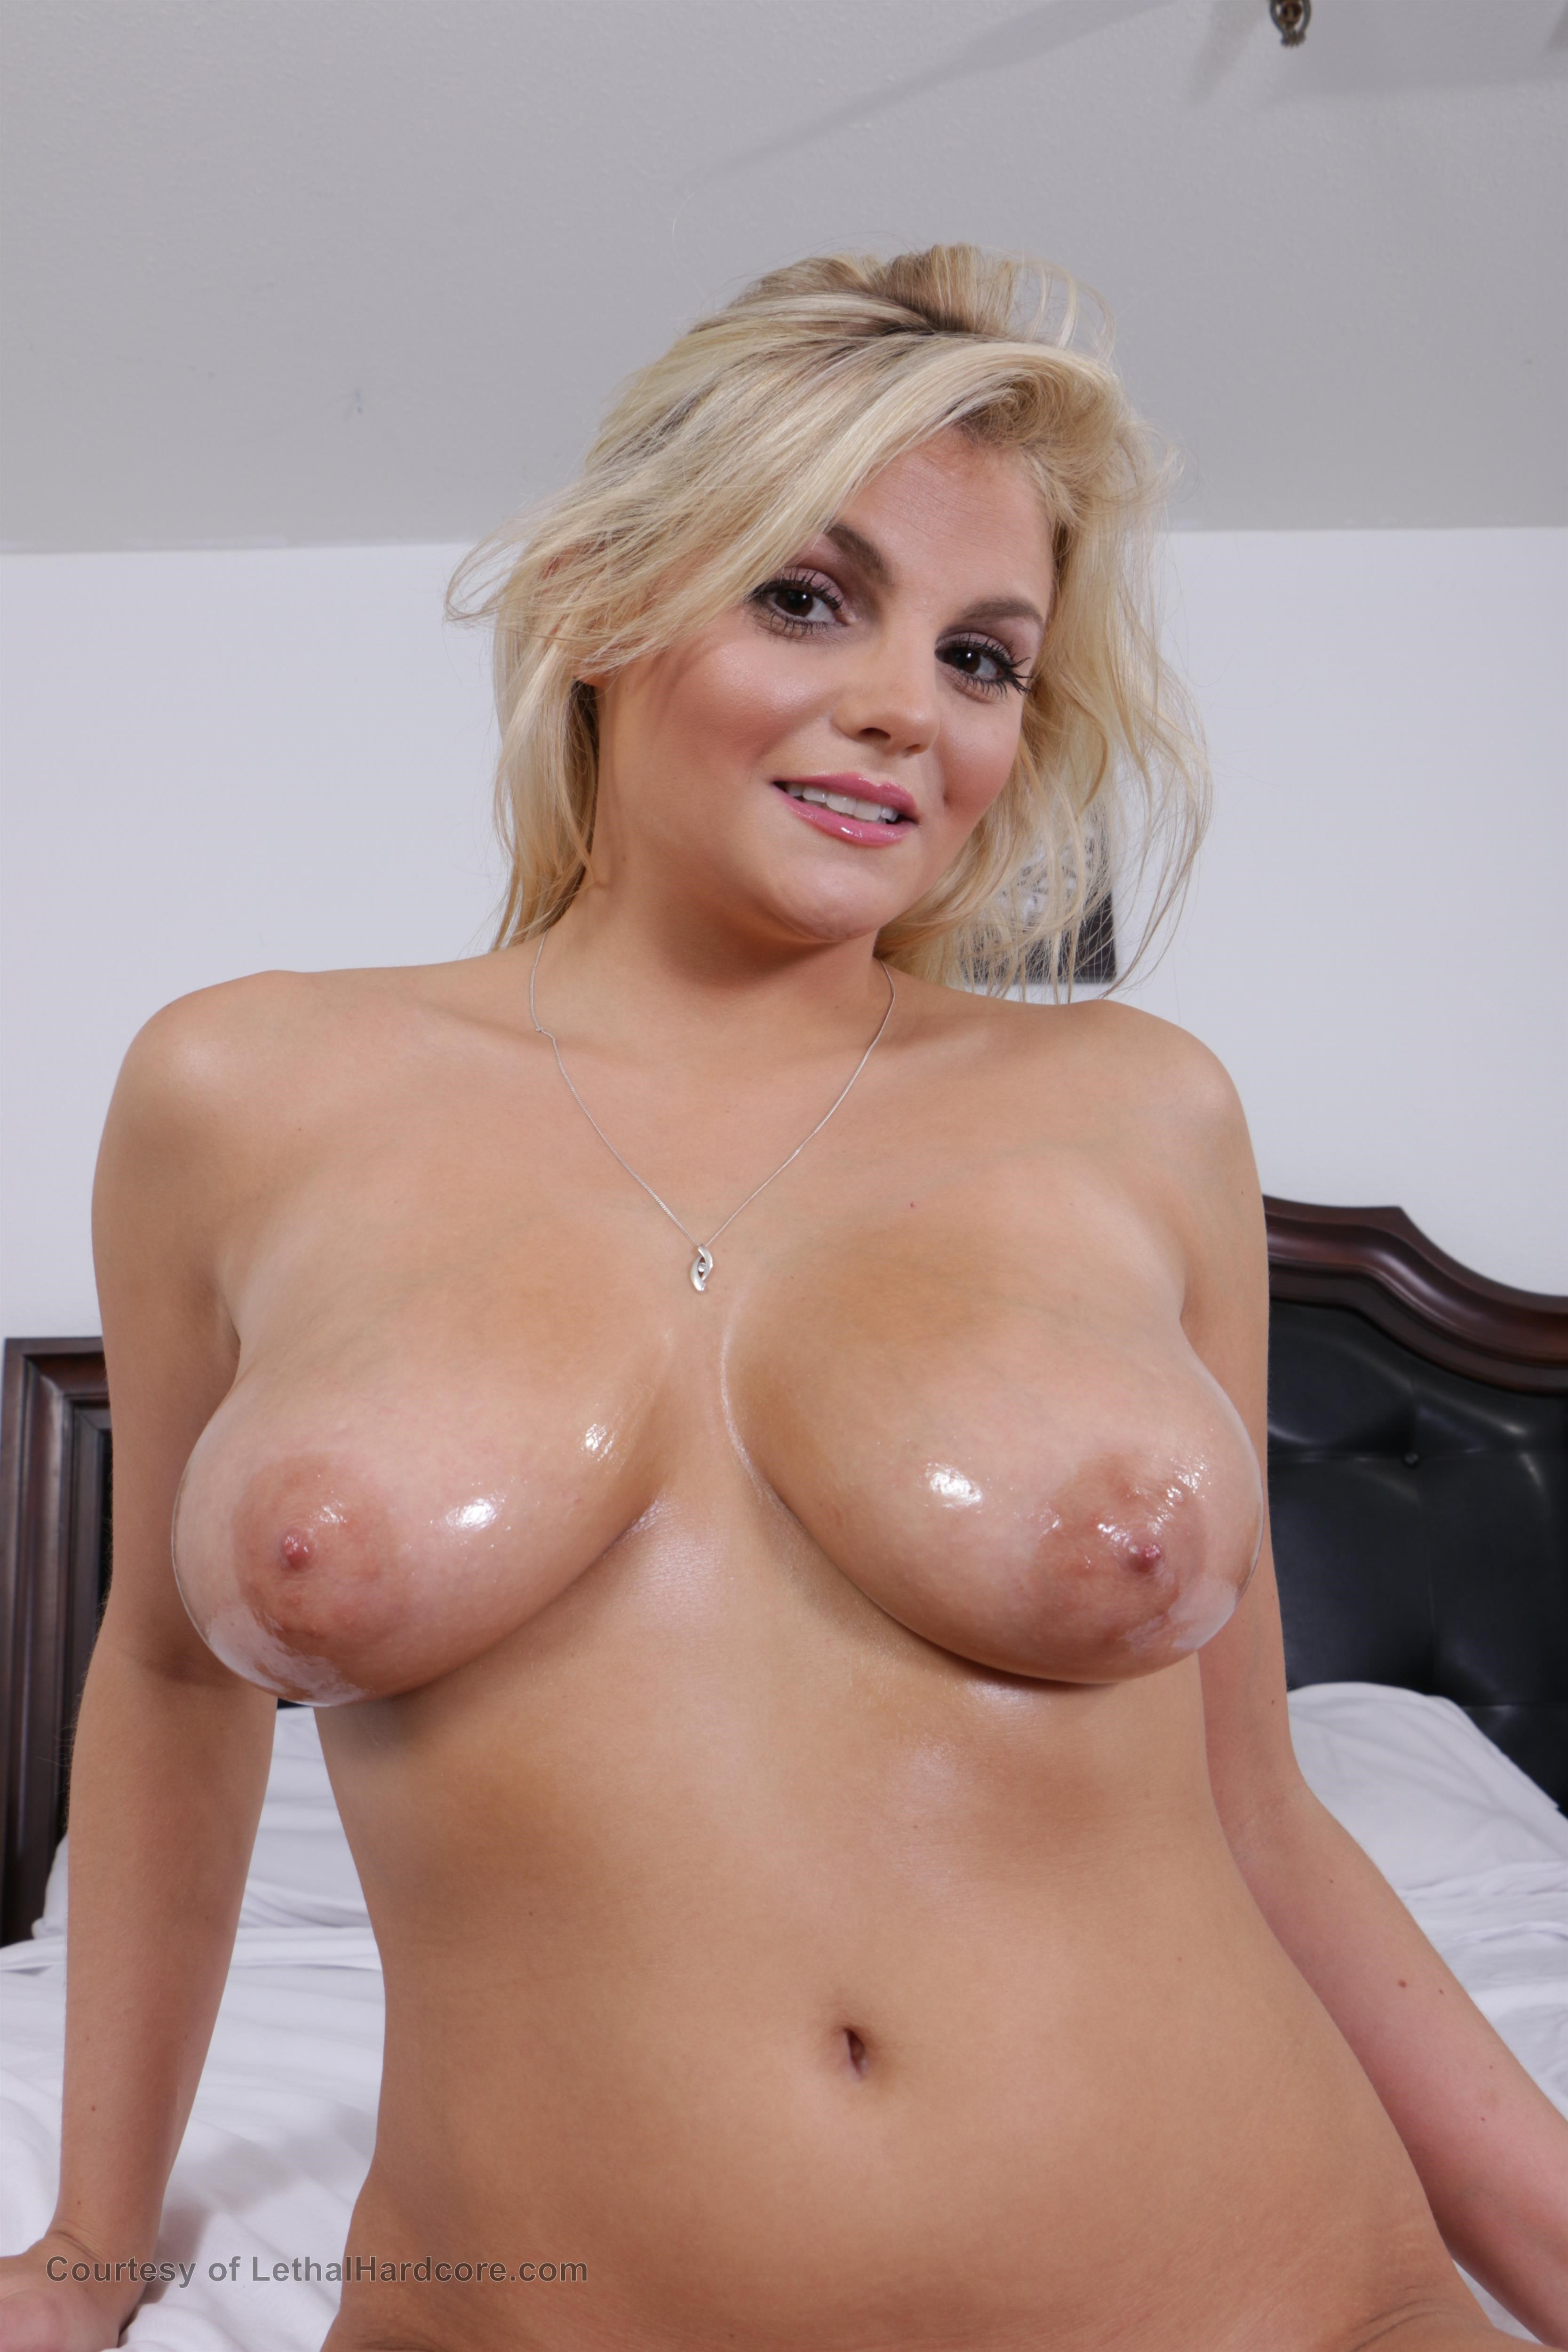 Big Natural Tits Creampies - Lethal Hardcore Image Gallery -8854